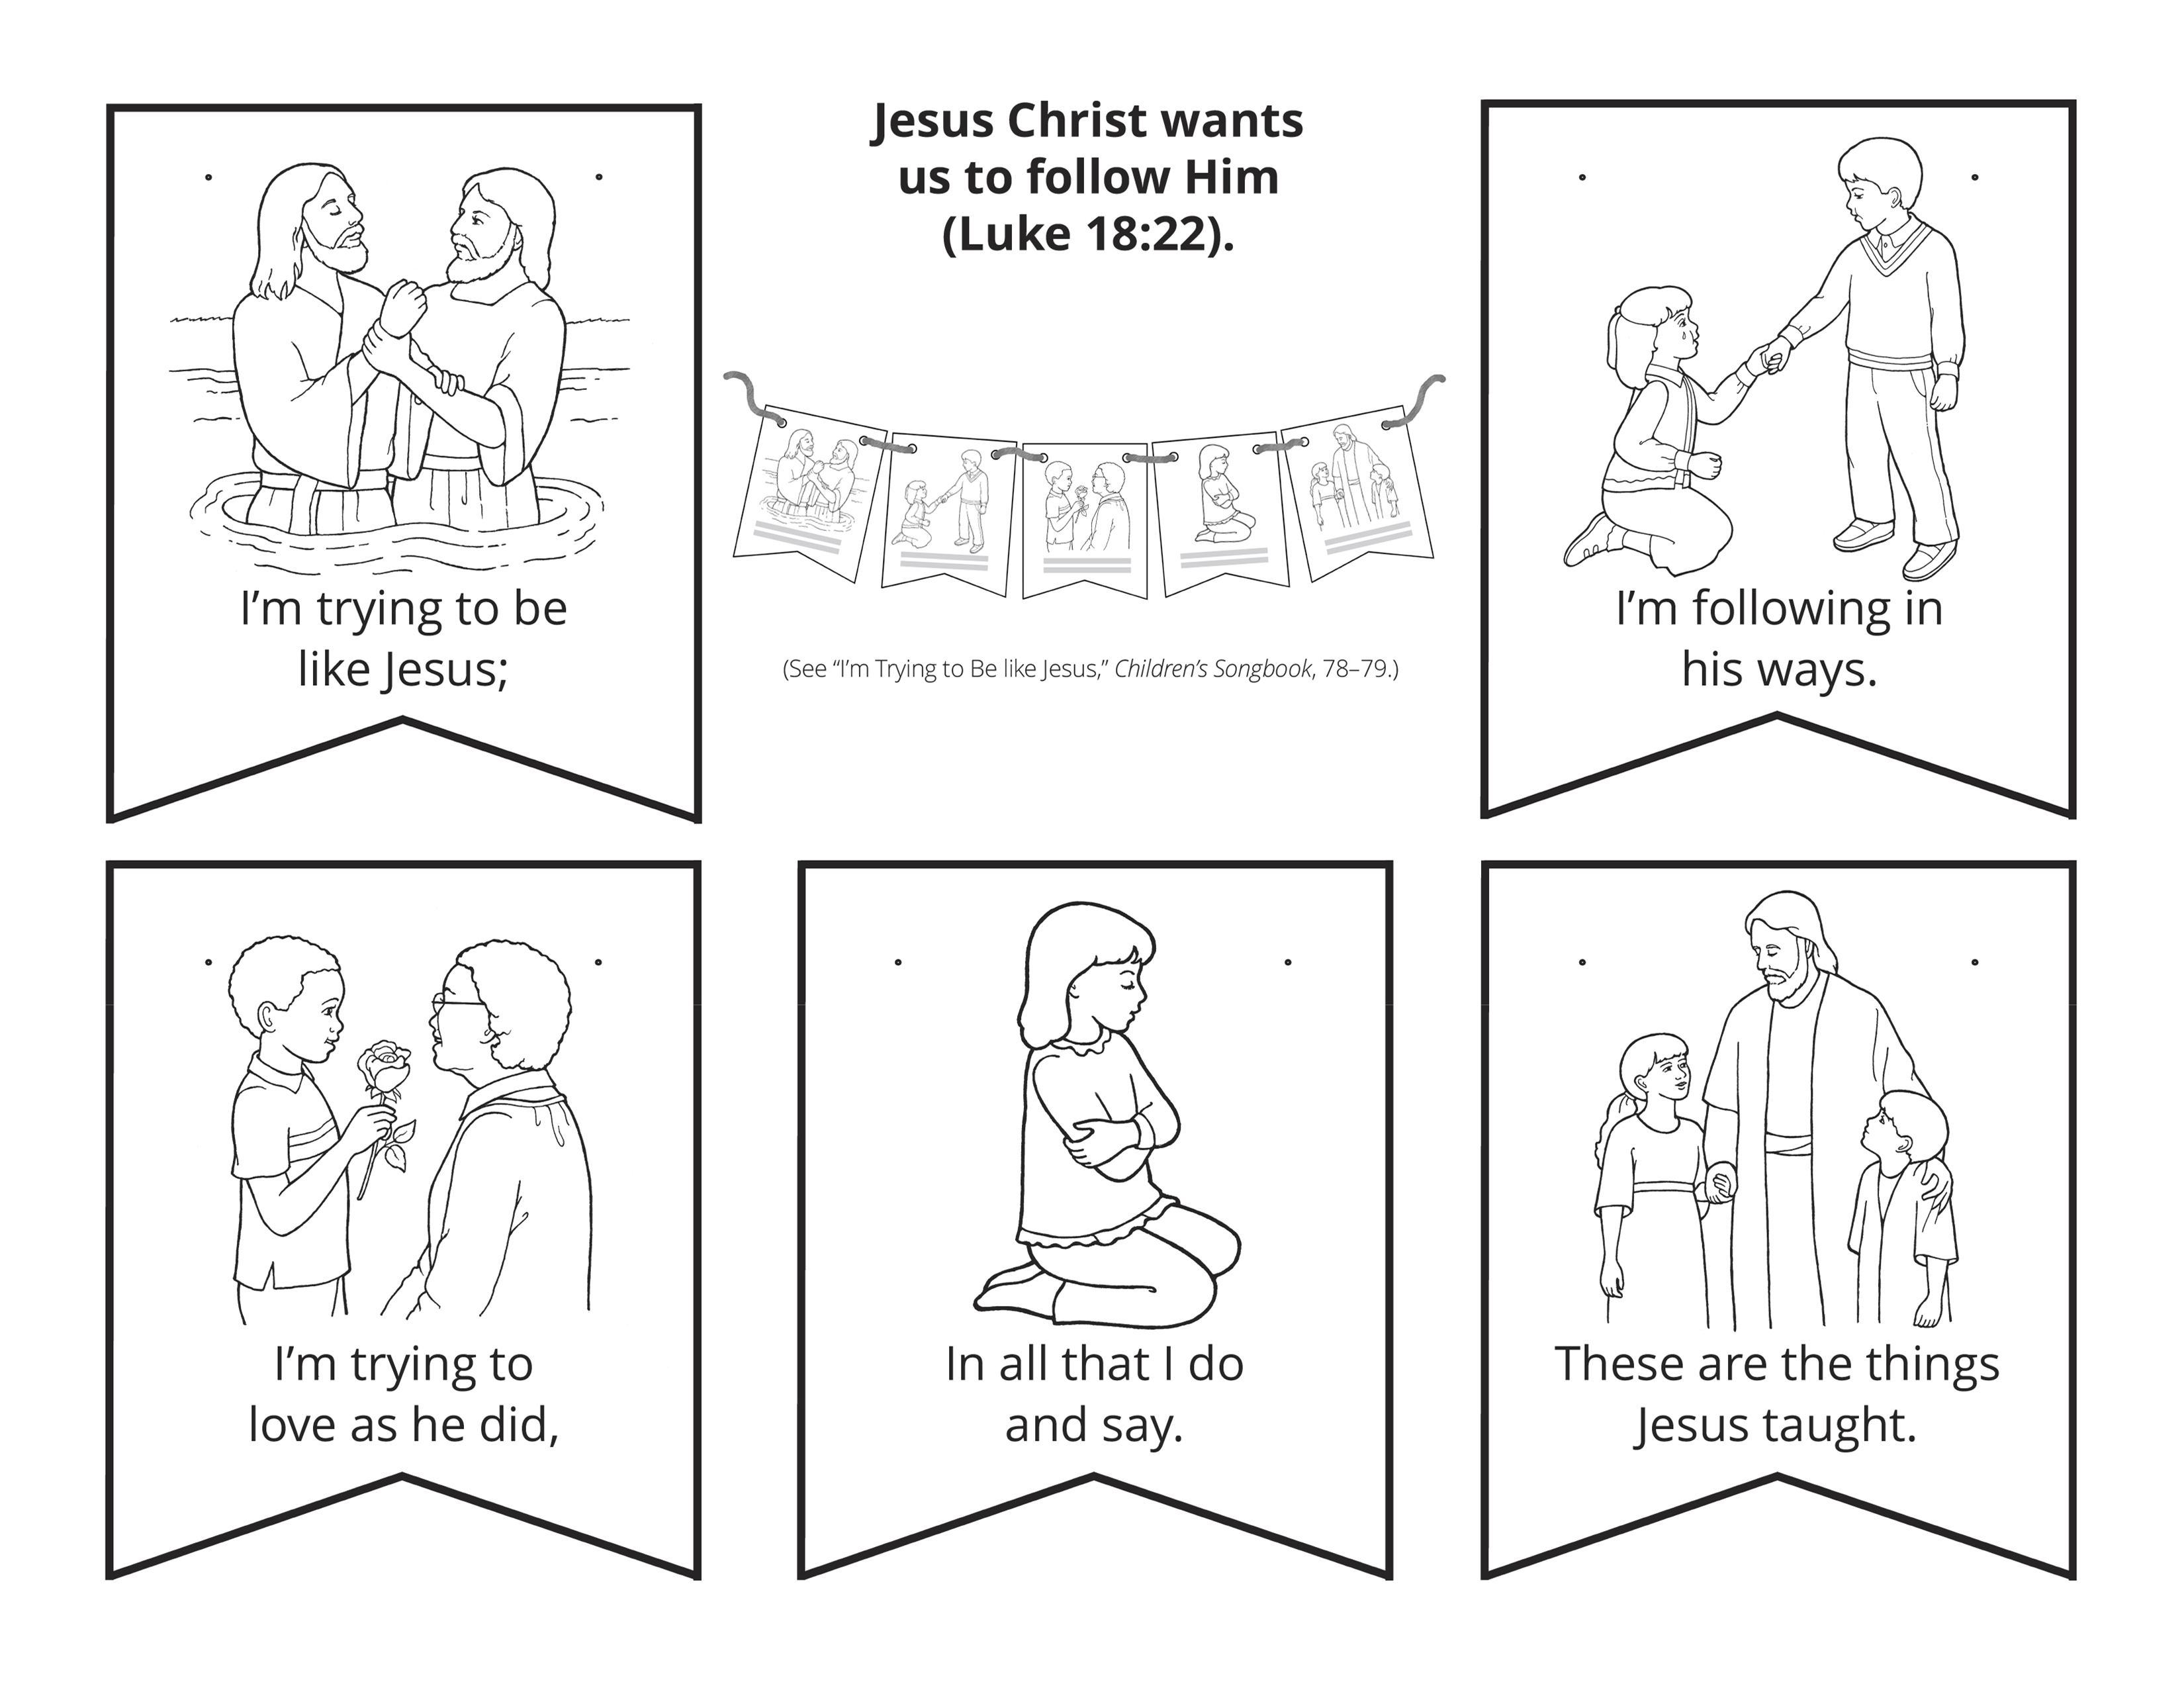 Five illustrations of people following Jesus Christ.